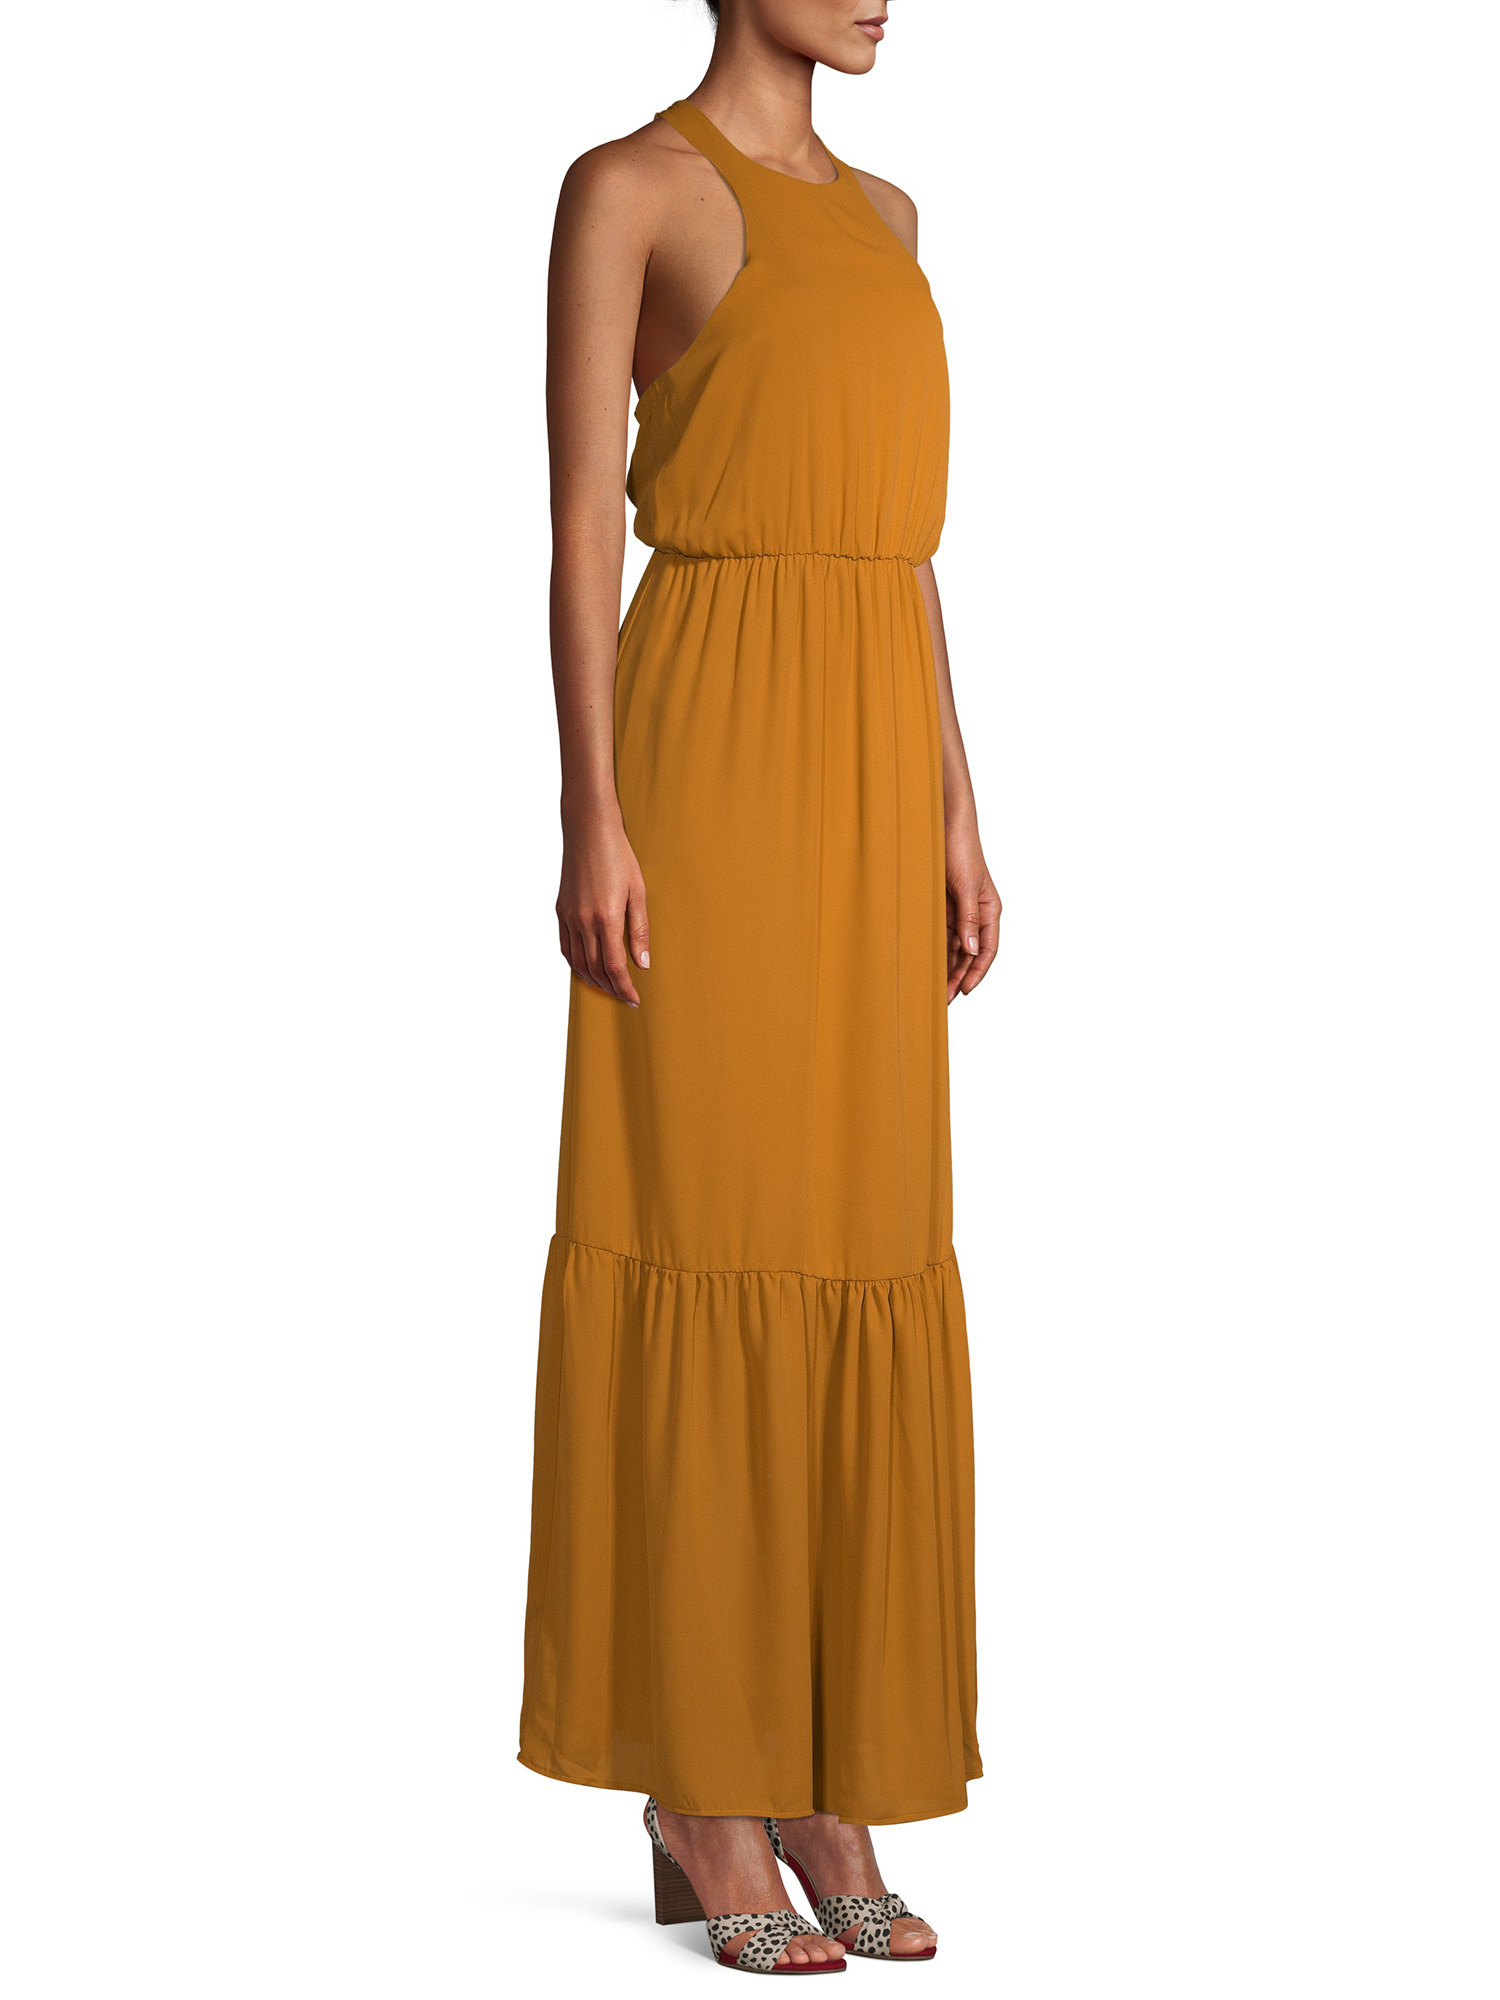 model in a yellow maxi halter dress